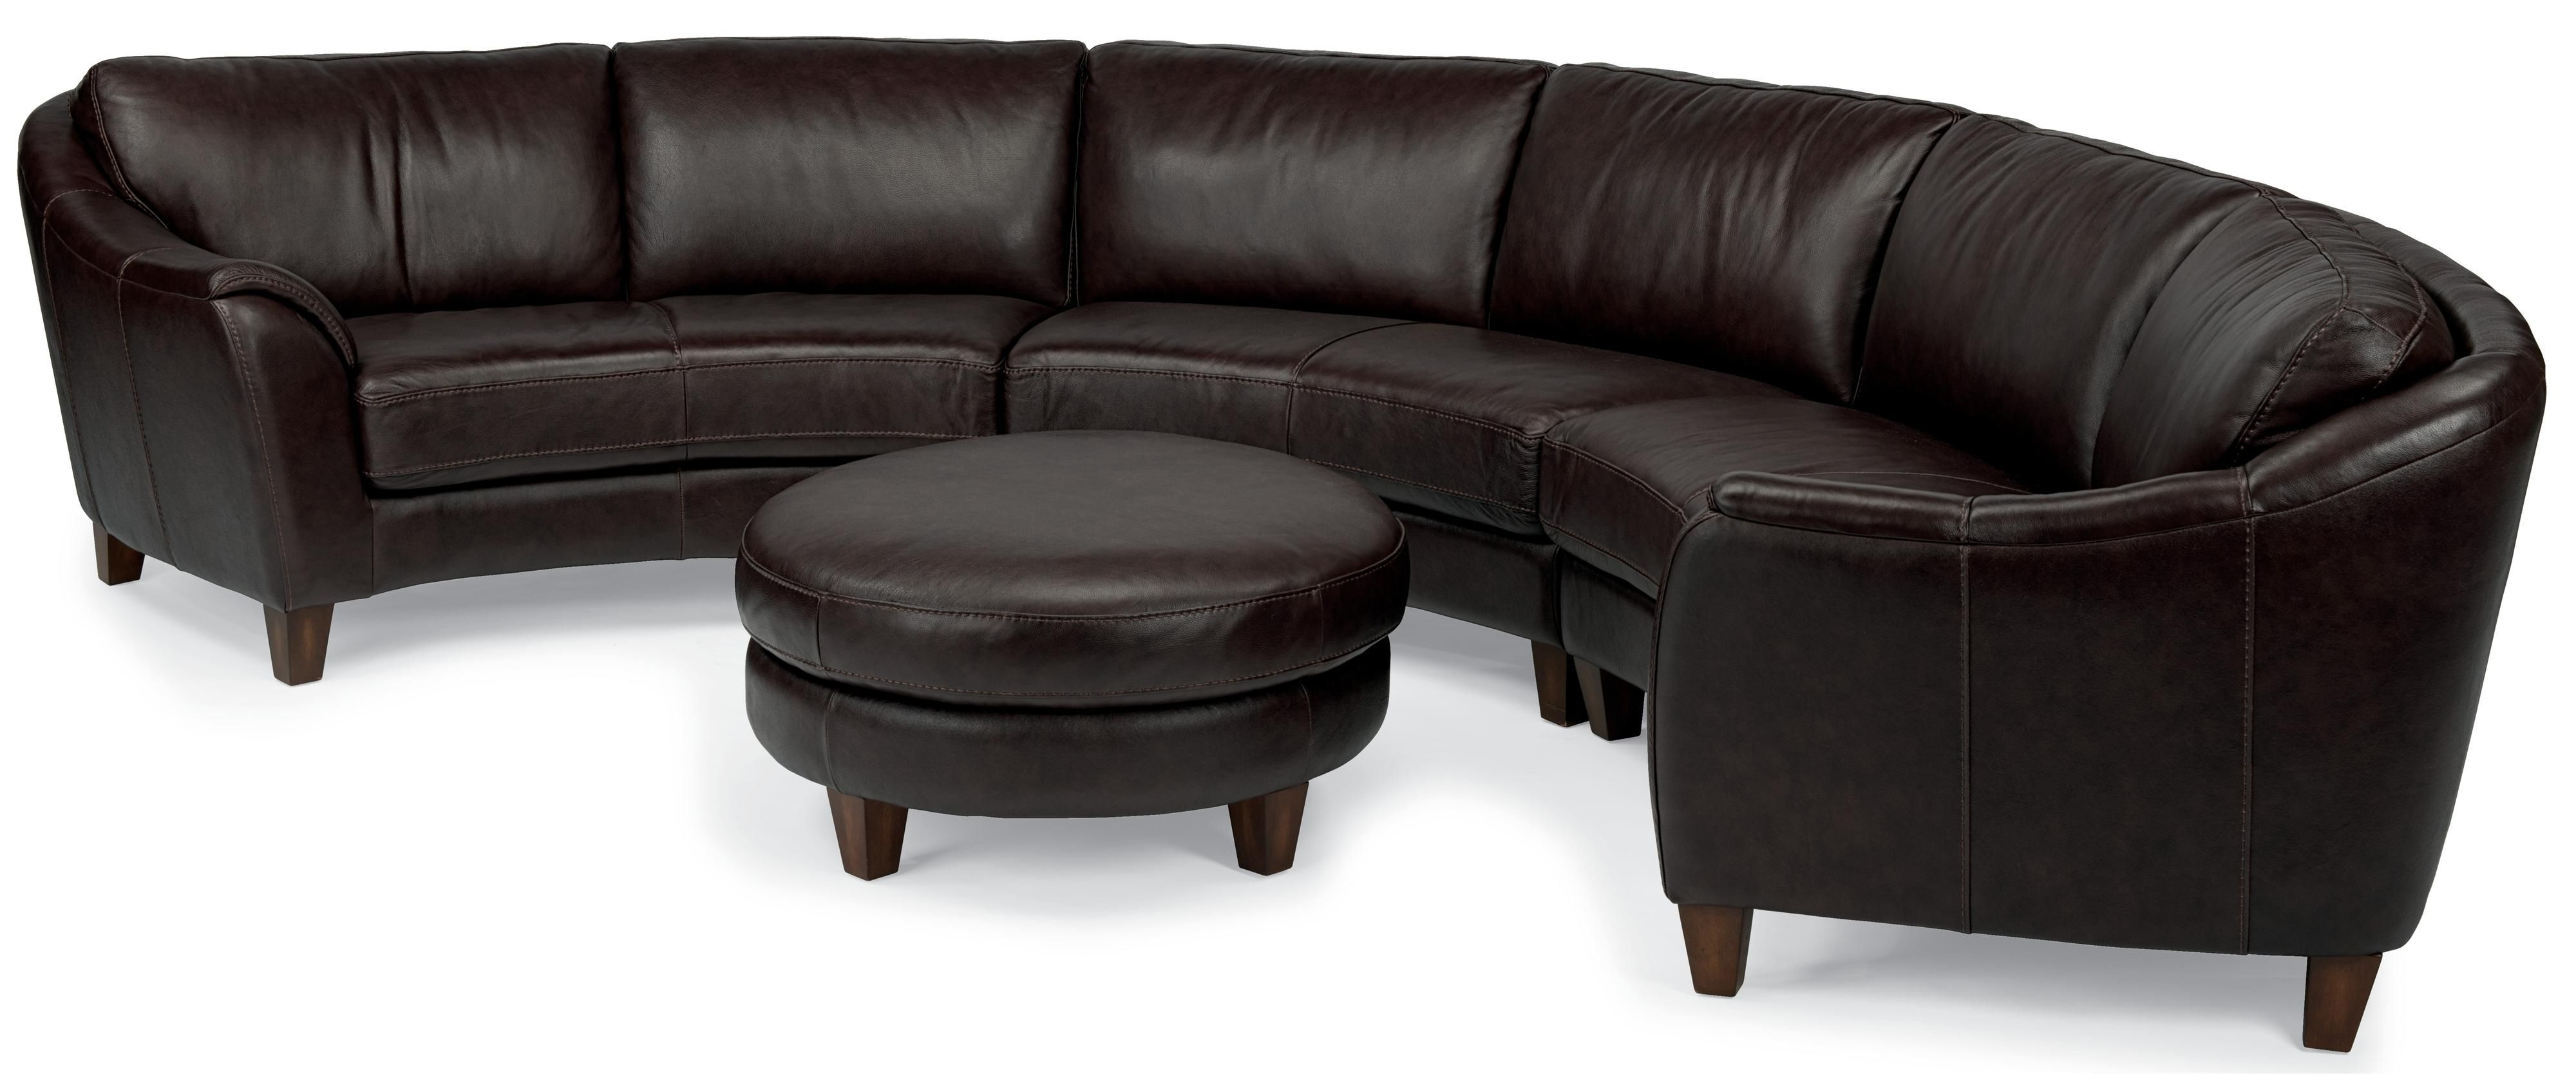 Flexsteel Latitudes Lidia Contemporary Three Piece Conversation In Well Known Nova Scotia Sectional Sofas (View 19 of 20)